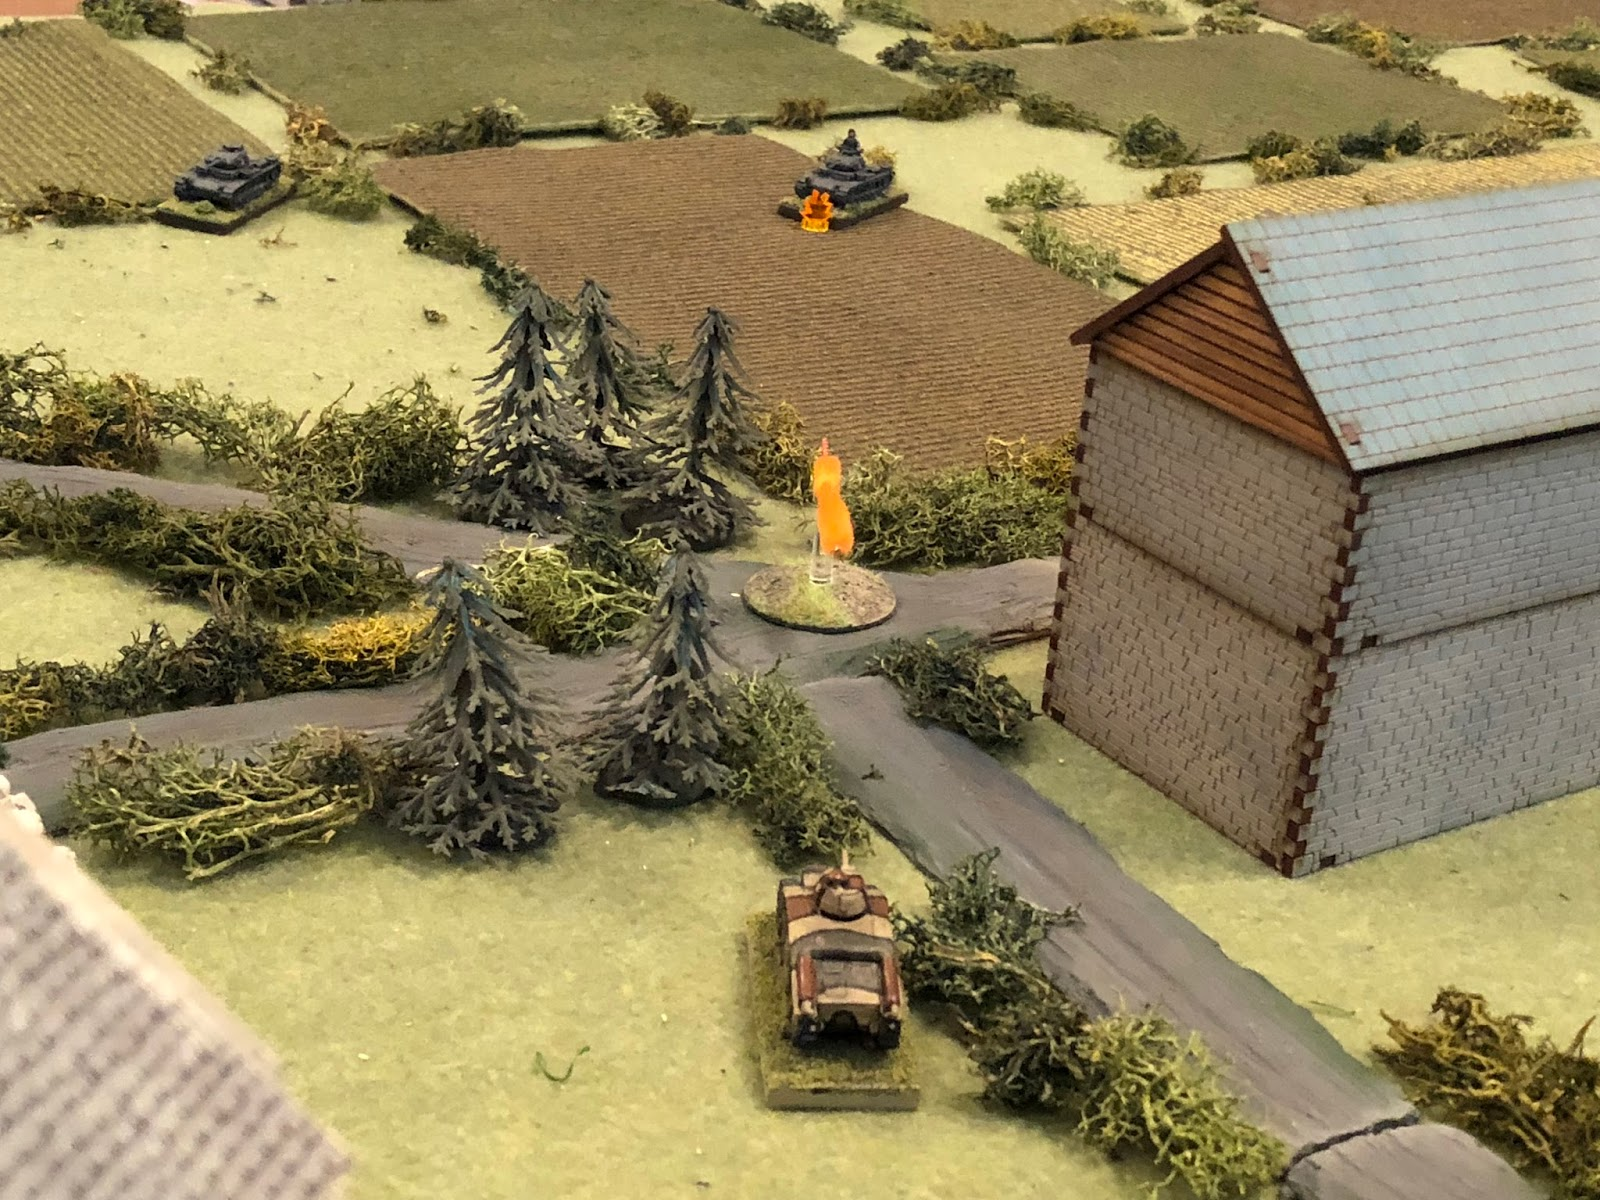 And as they do, Sgt Guillaume pivots his tank left and fires on Lt Loeb's Panzer III (top centre)...